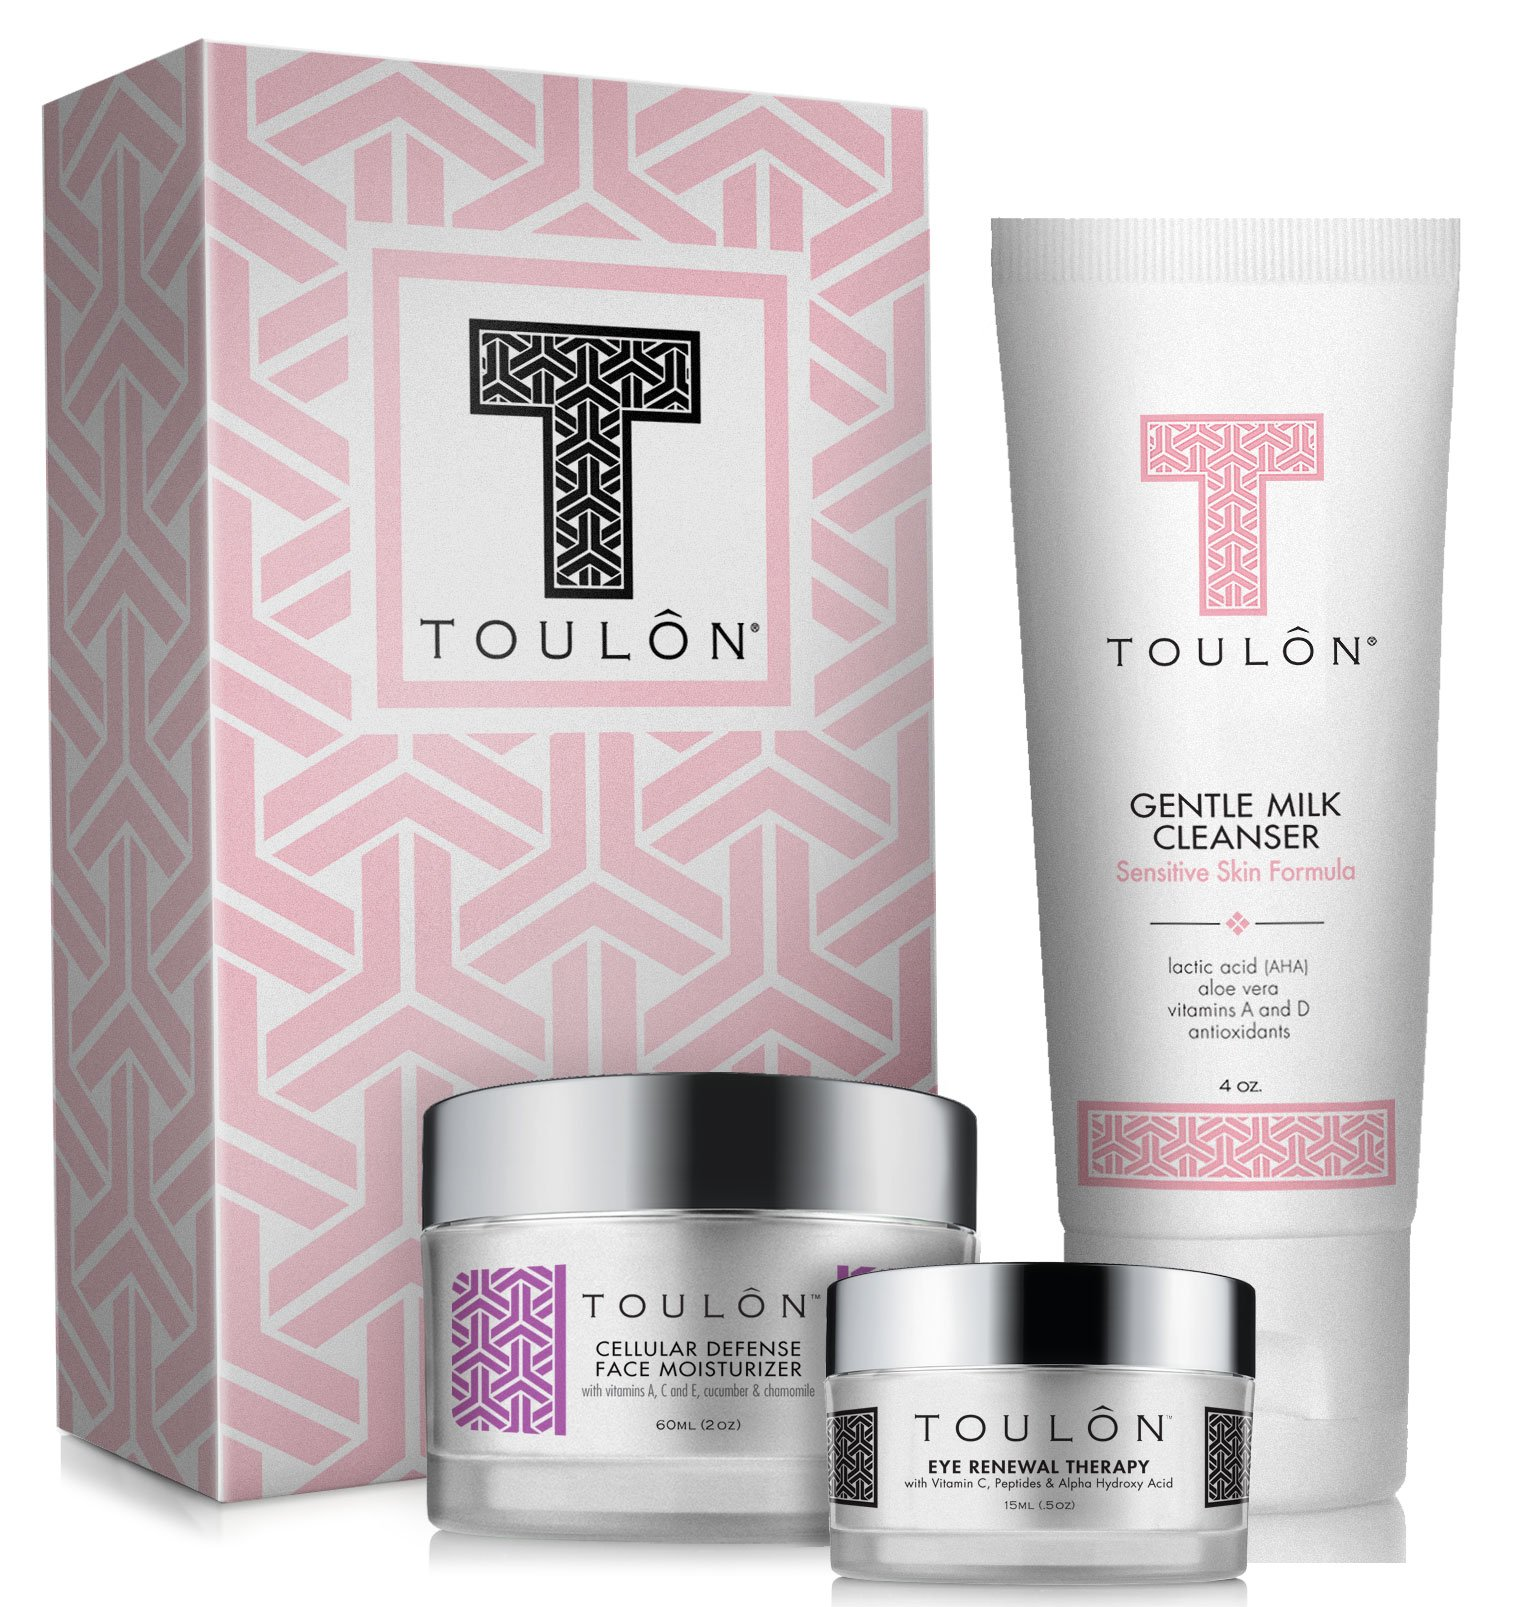 Anti Aging Skin Care Kits: Beauty Gift Sets for Women; Alpha Hydroxy Face Cleanser, Antioxidant Day Cream for Face & Eye Cream for Dark Circles and Puffiness. Perfect Gift Set Kit by TOULON